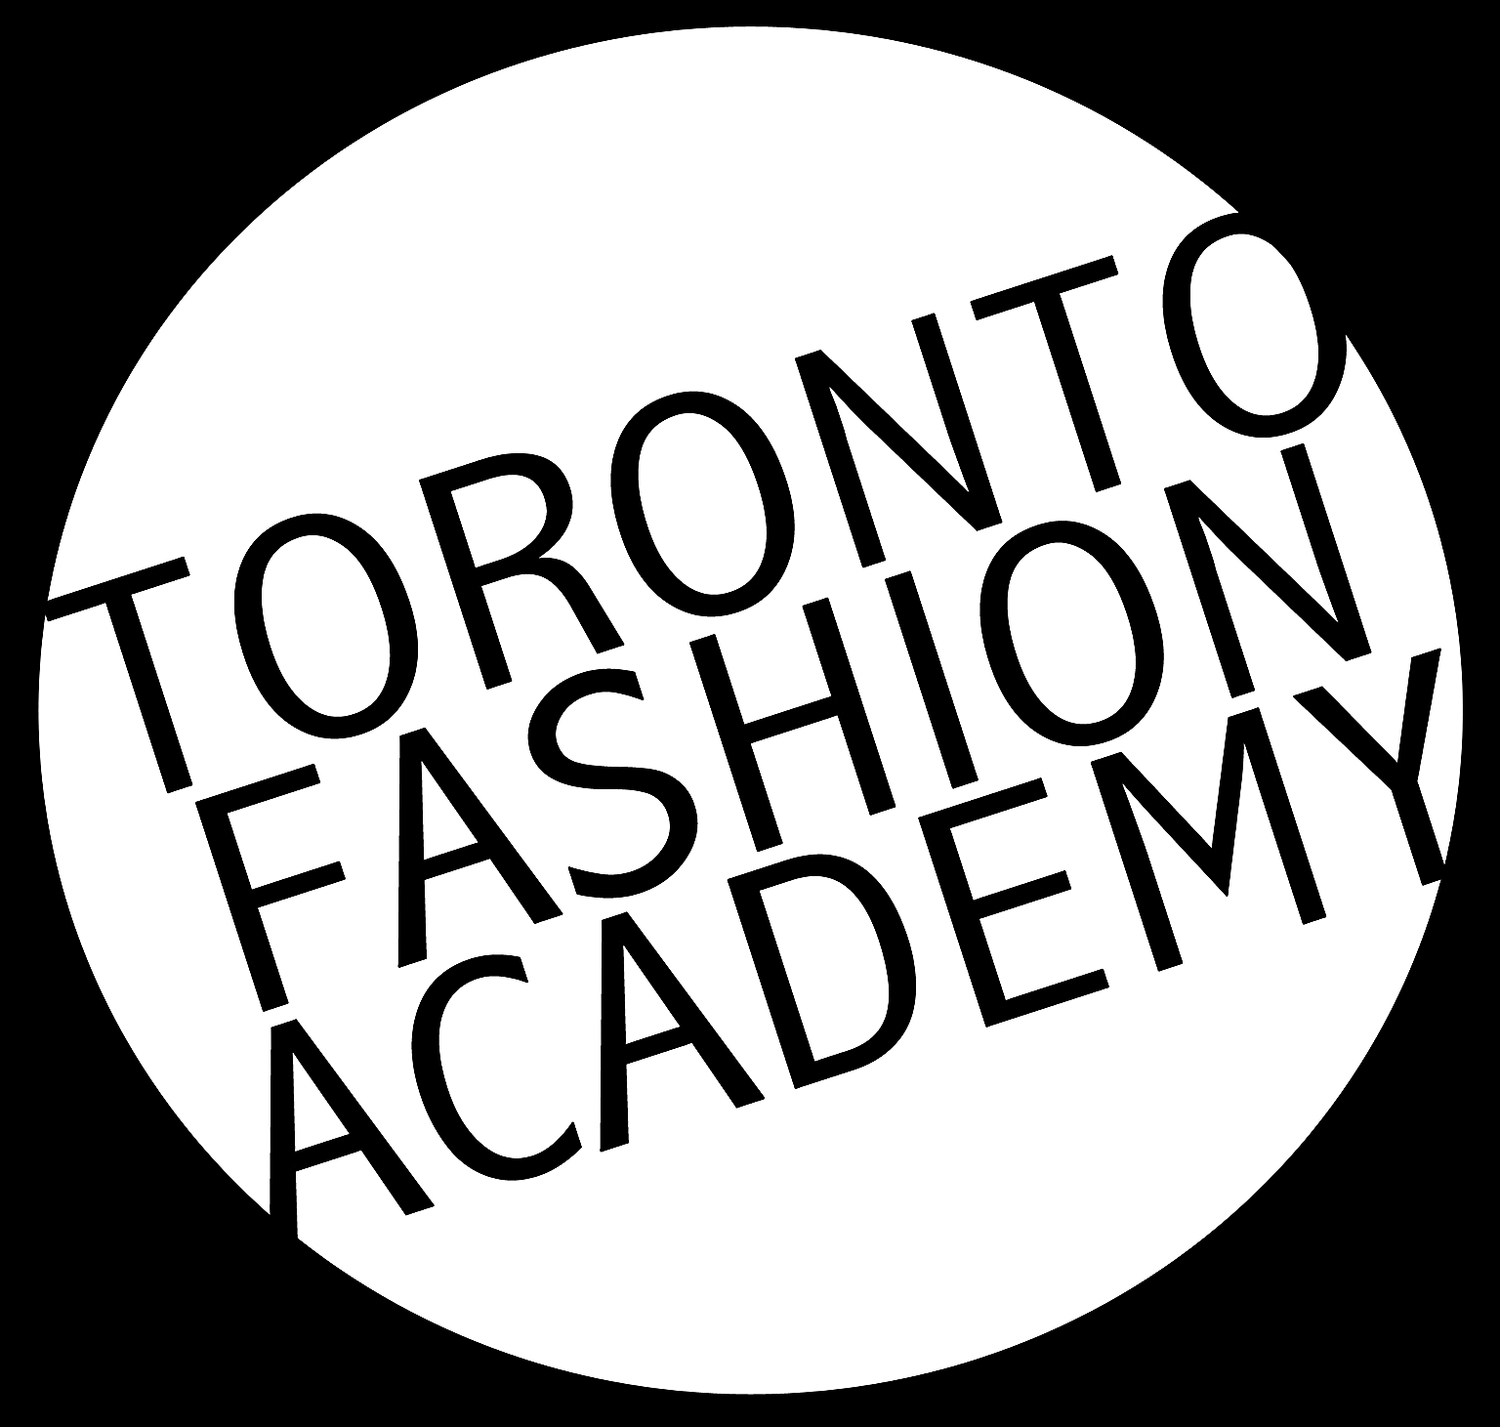 Toronto Fashion Academy